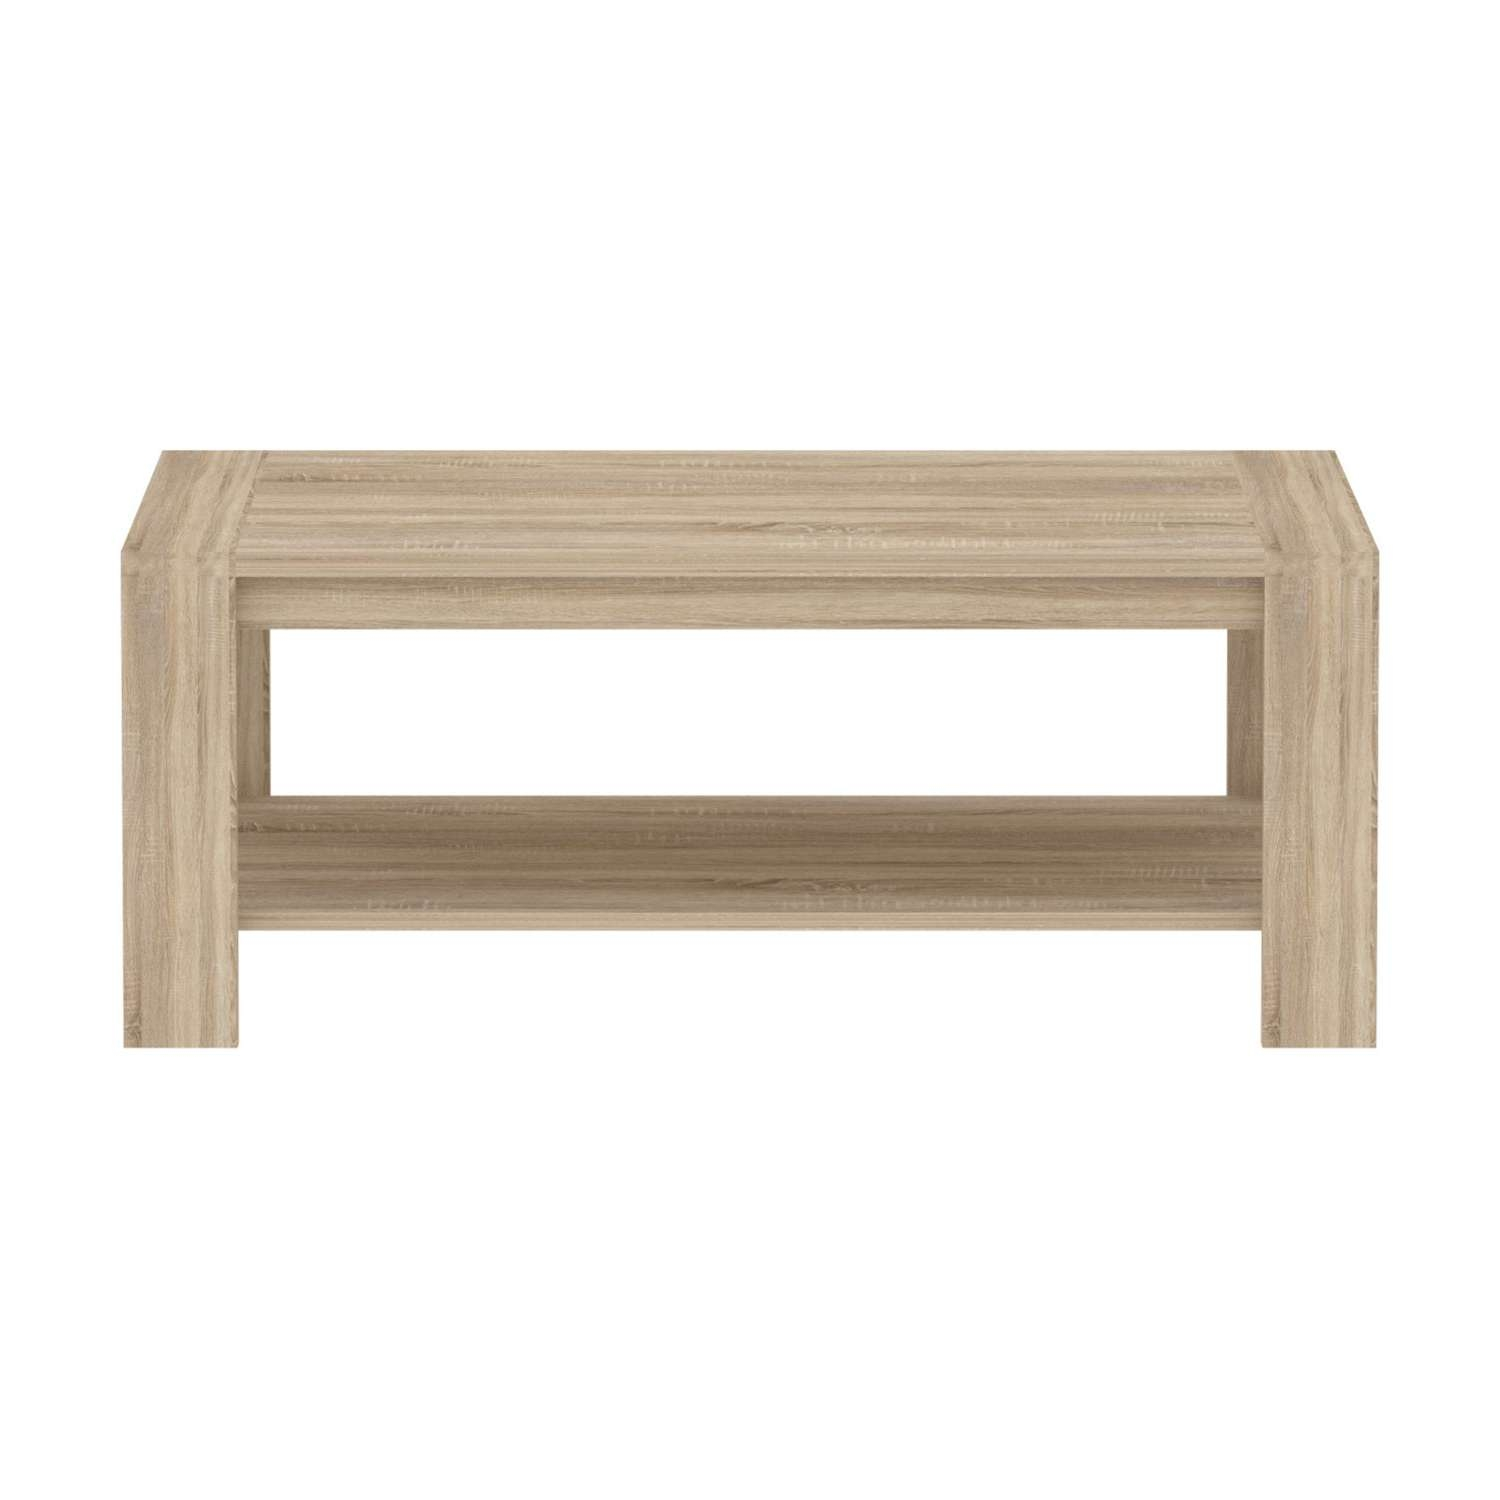 Well Liked Range Coffee Tables Pertaining To Calpe Coffee Table (View 11 of 20)